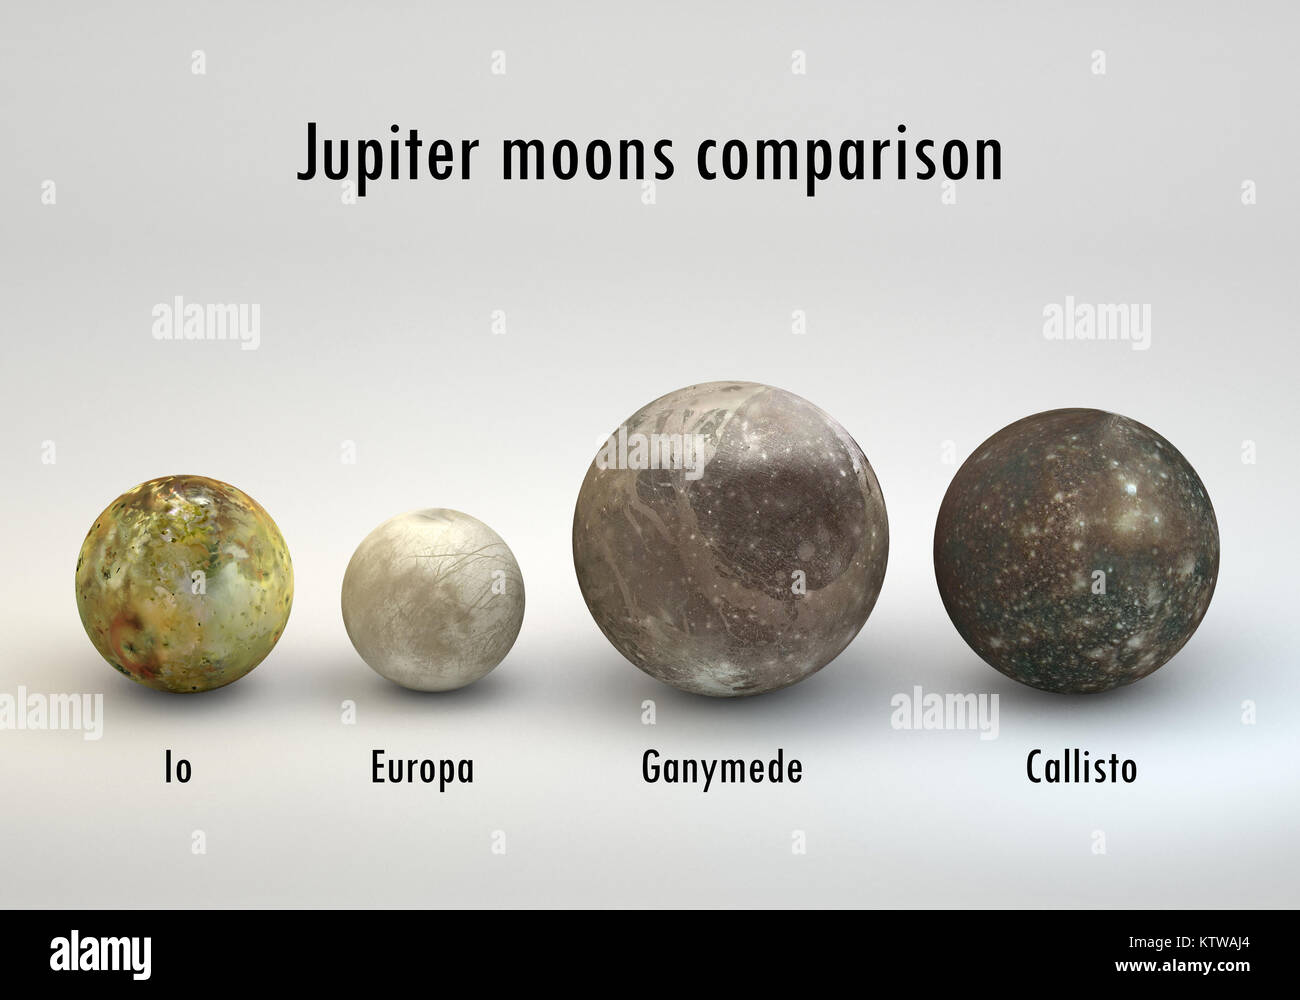 This image represents the comparison between the moons of Jupiter in size comparison in a precise scientific design - Stock Image